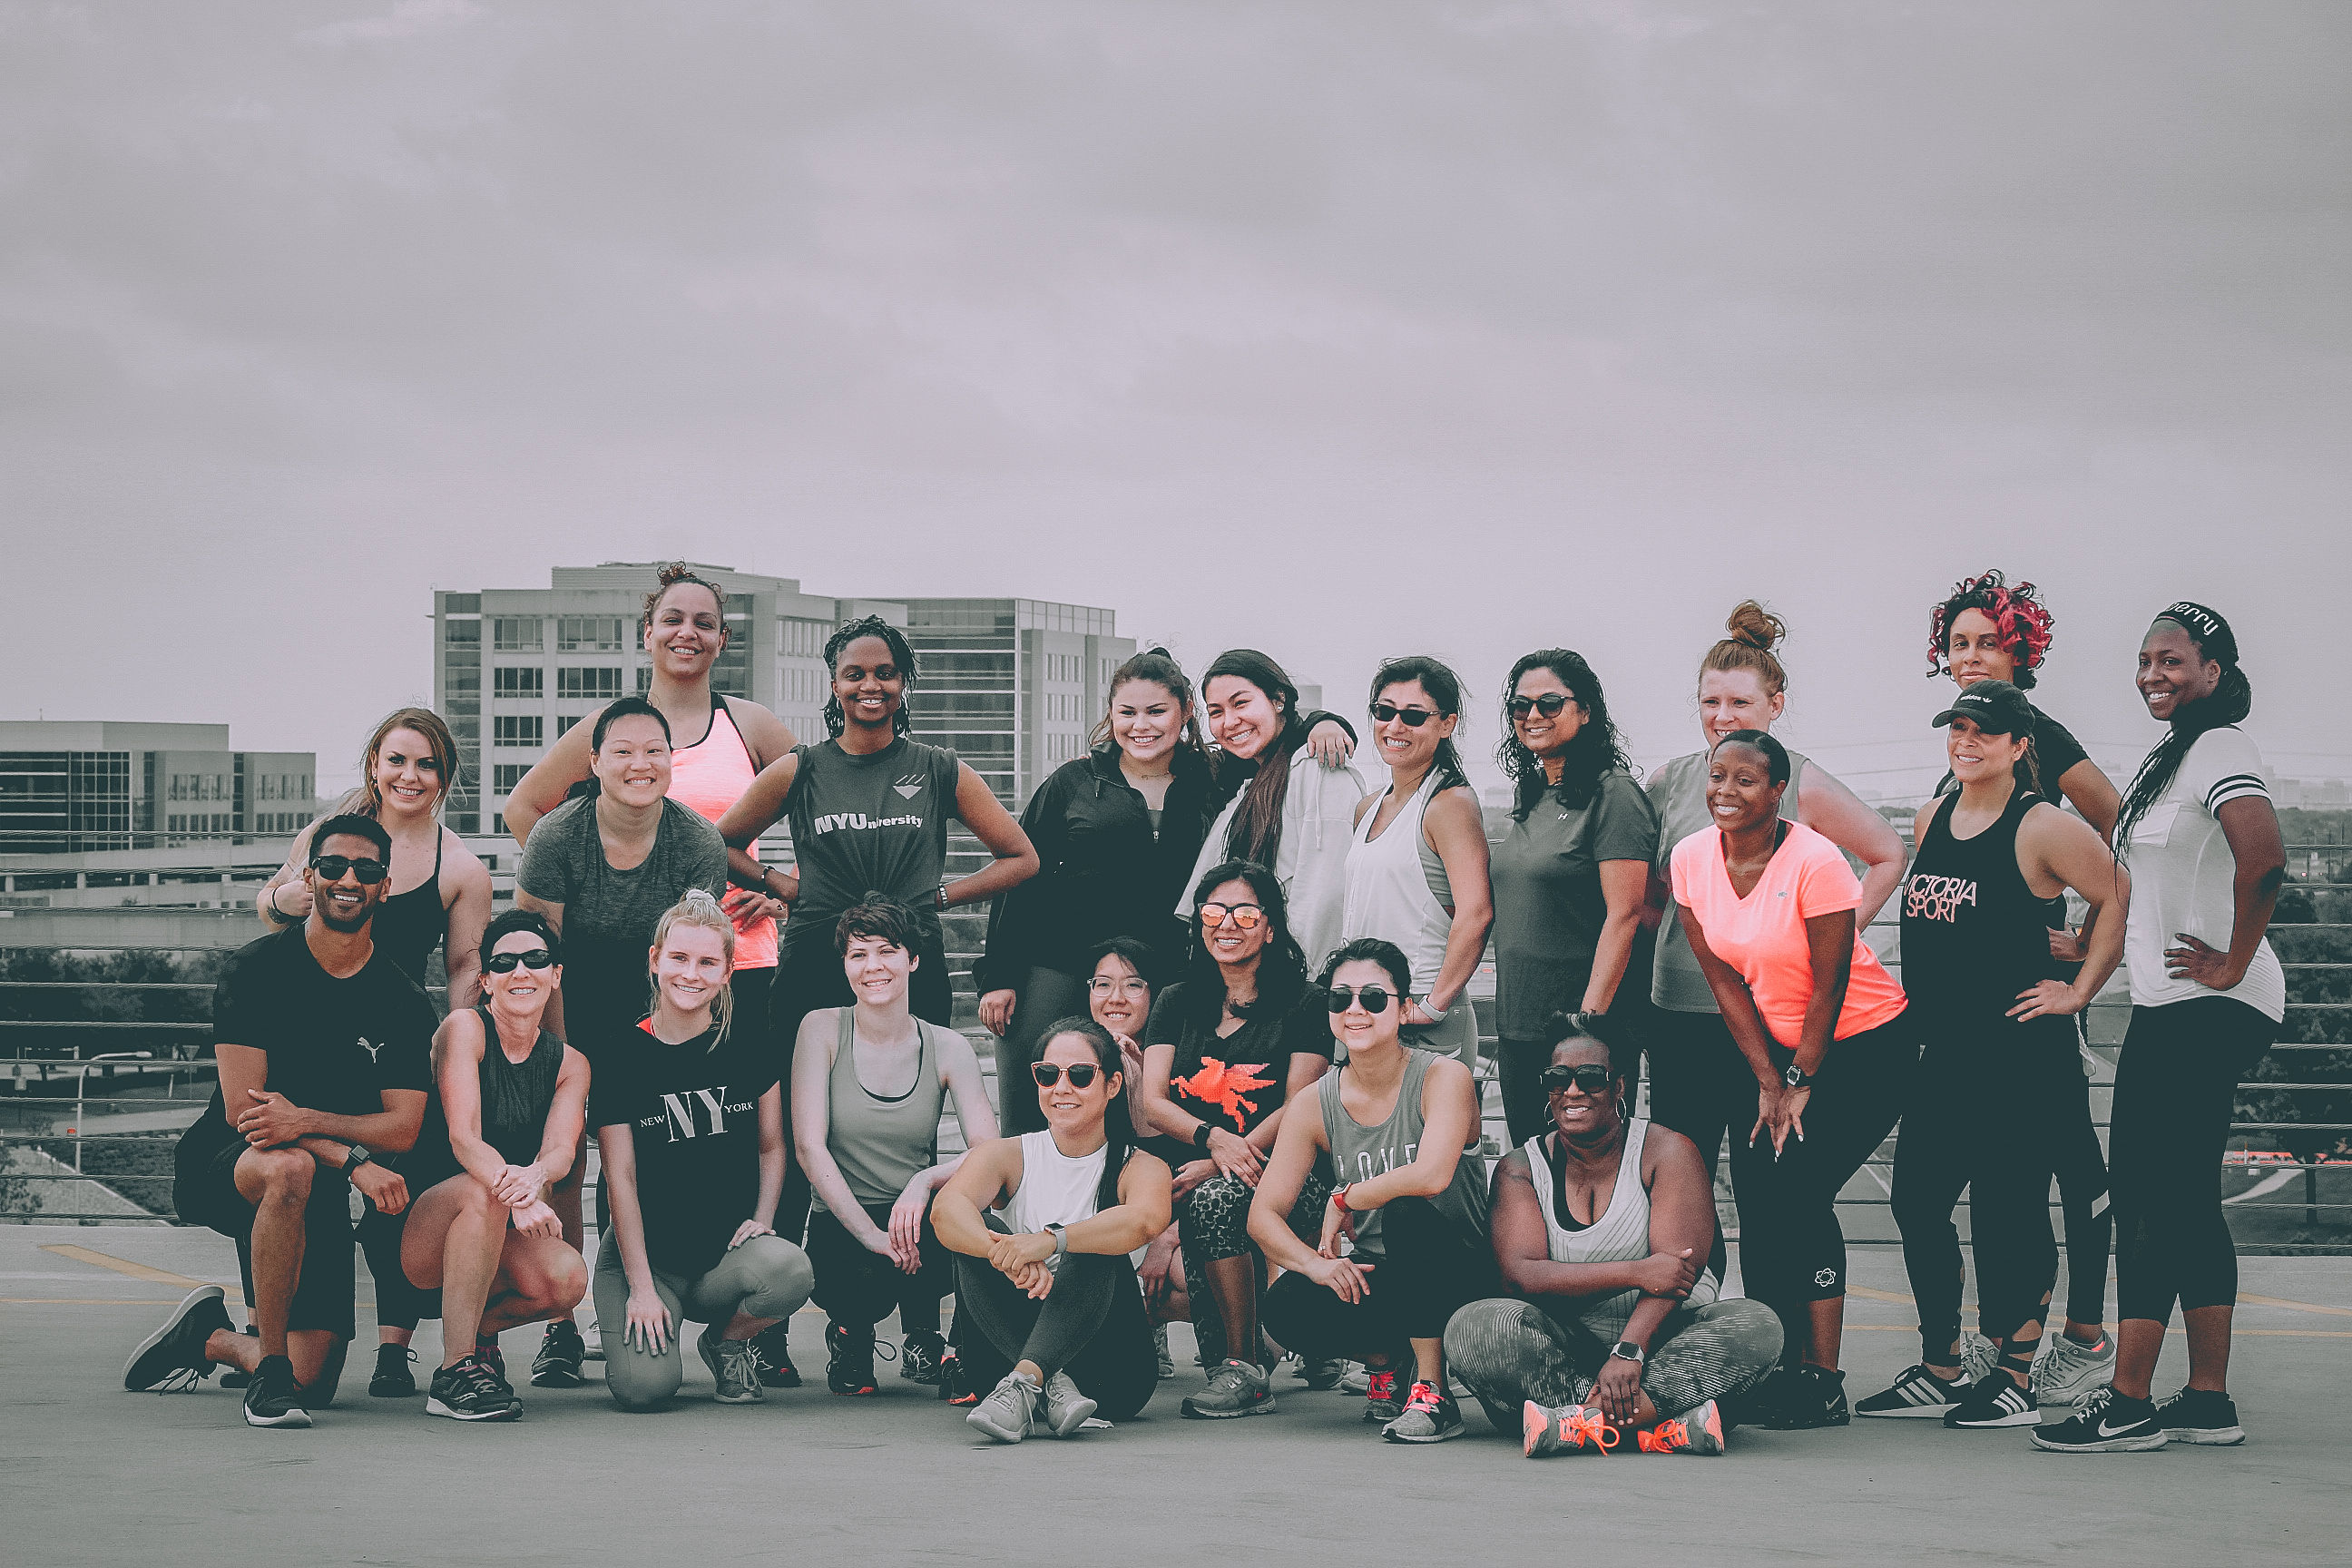 Swetin with Stacy Bootcamp at Legacy West garage rooftop